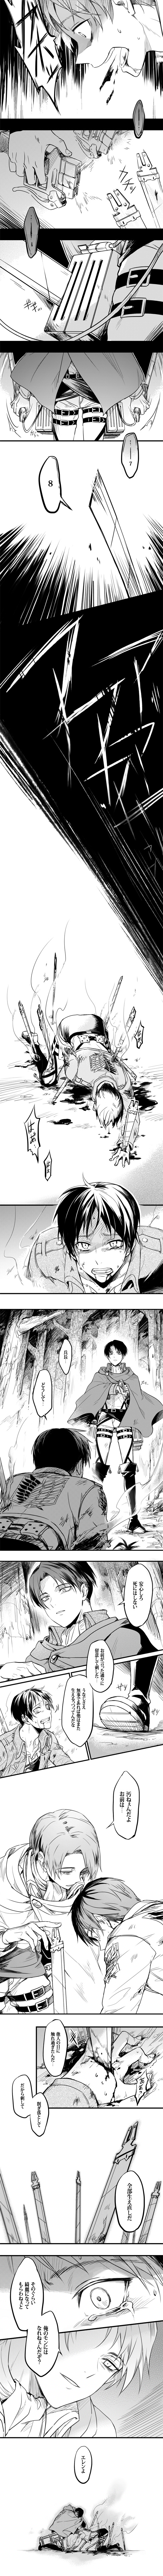 Because the world ends with us. Rivaille (Levi) x Eren Jaeger